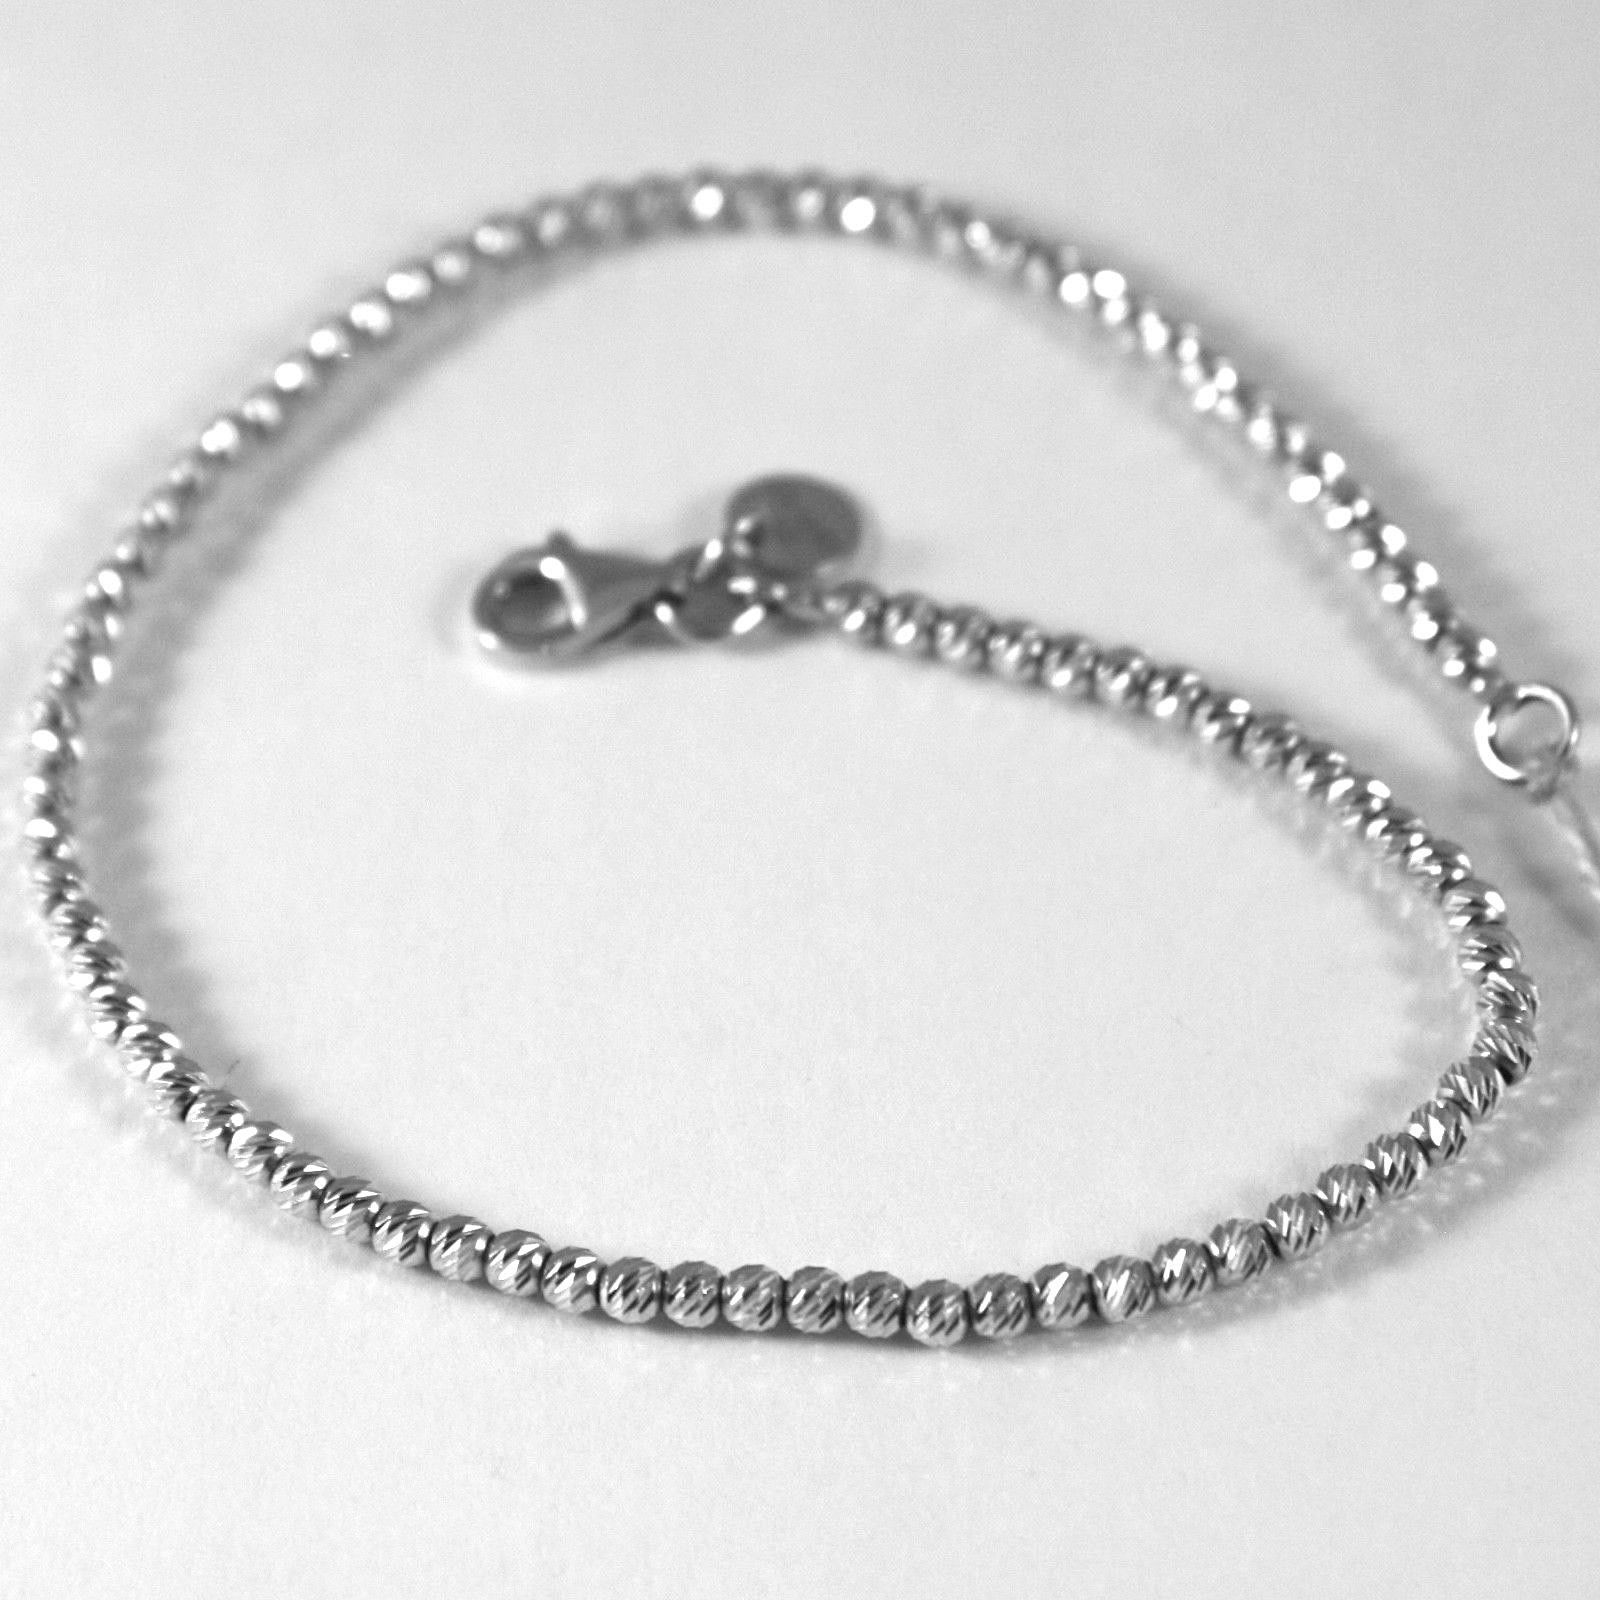 18K WHITE GOLD BRACELET WITH FINELY WORKED SPHERES, 1.5 MM DIAMOND CUT BALLS